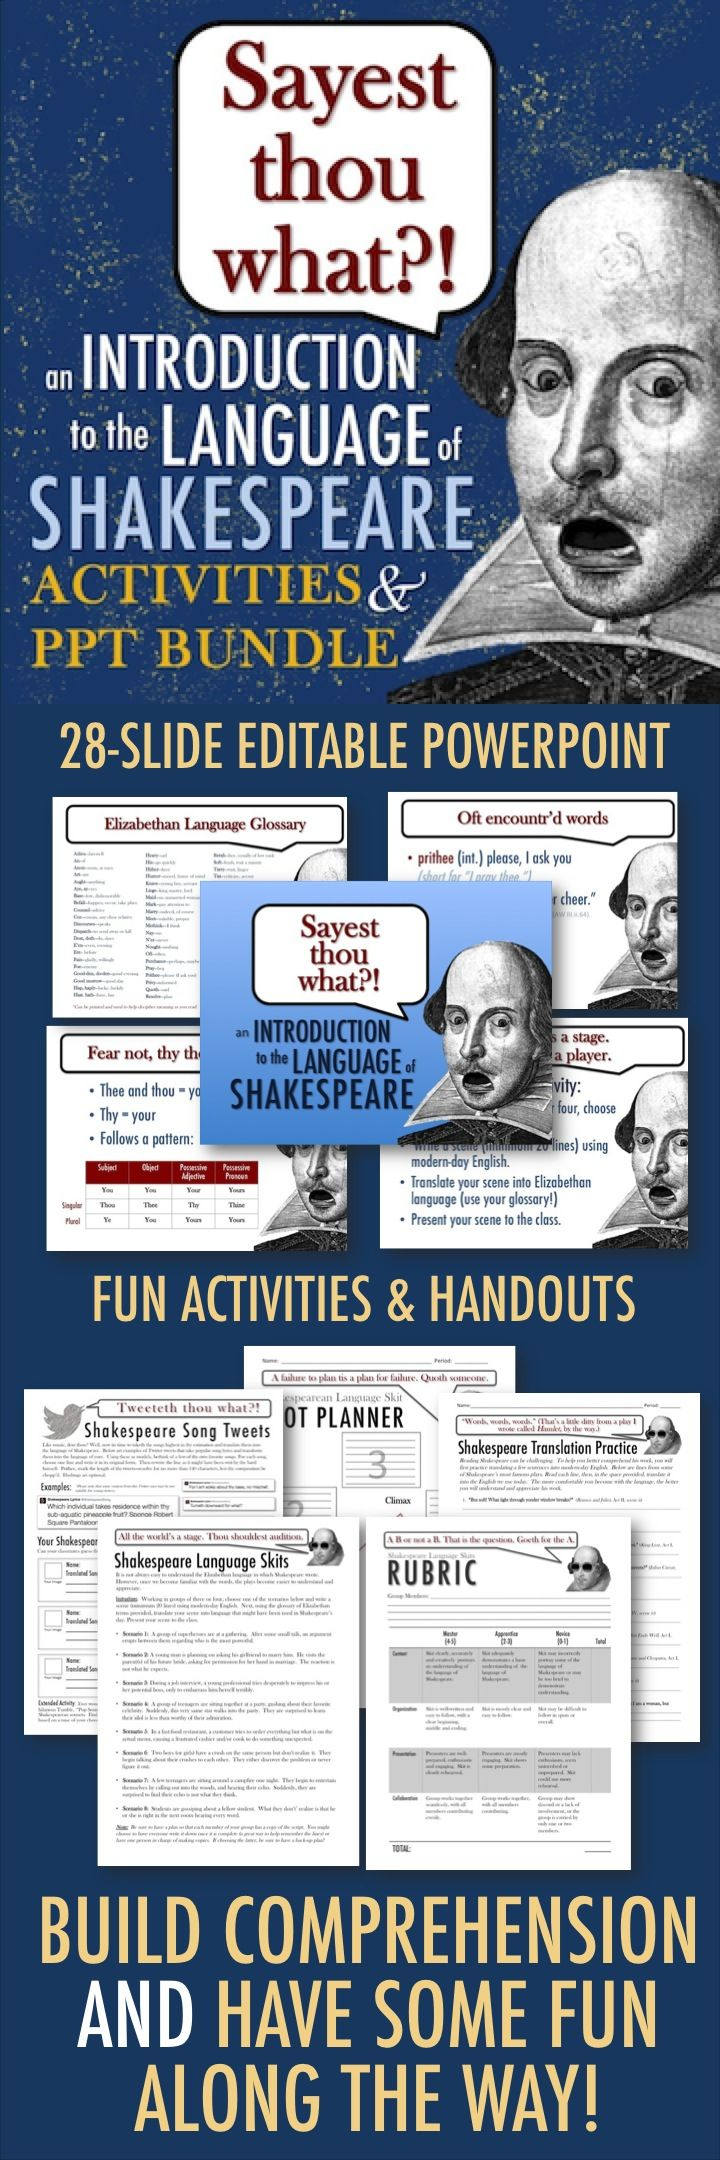 What's the effective way to study Shakespeare?